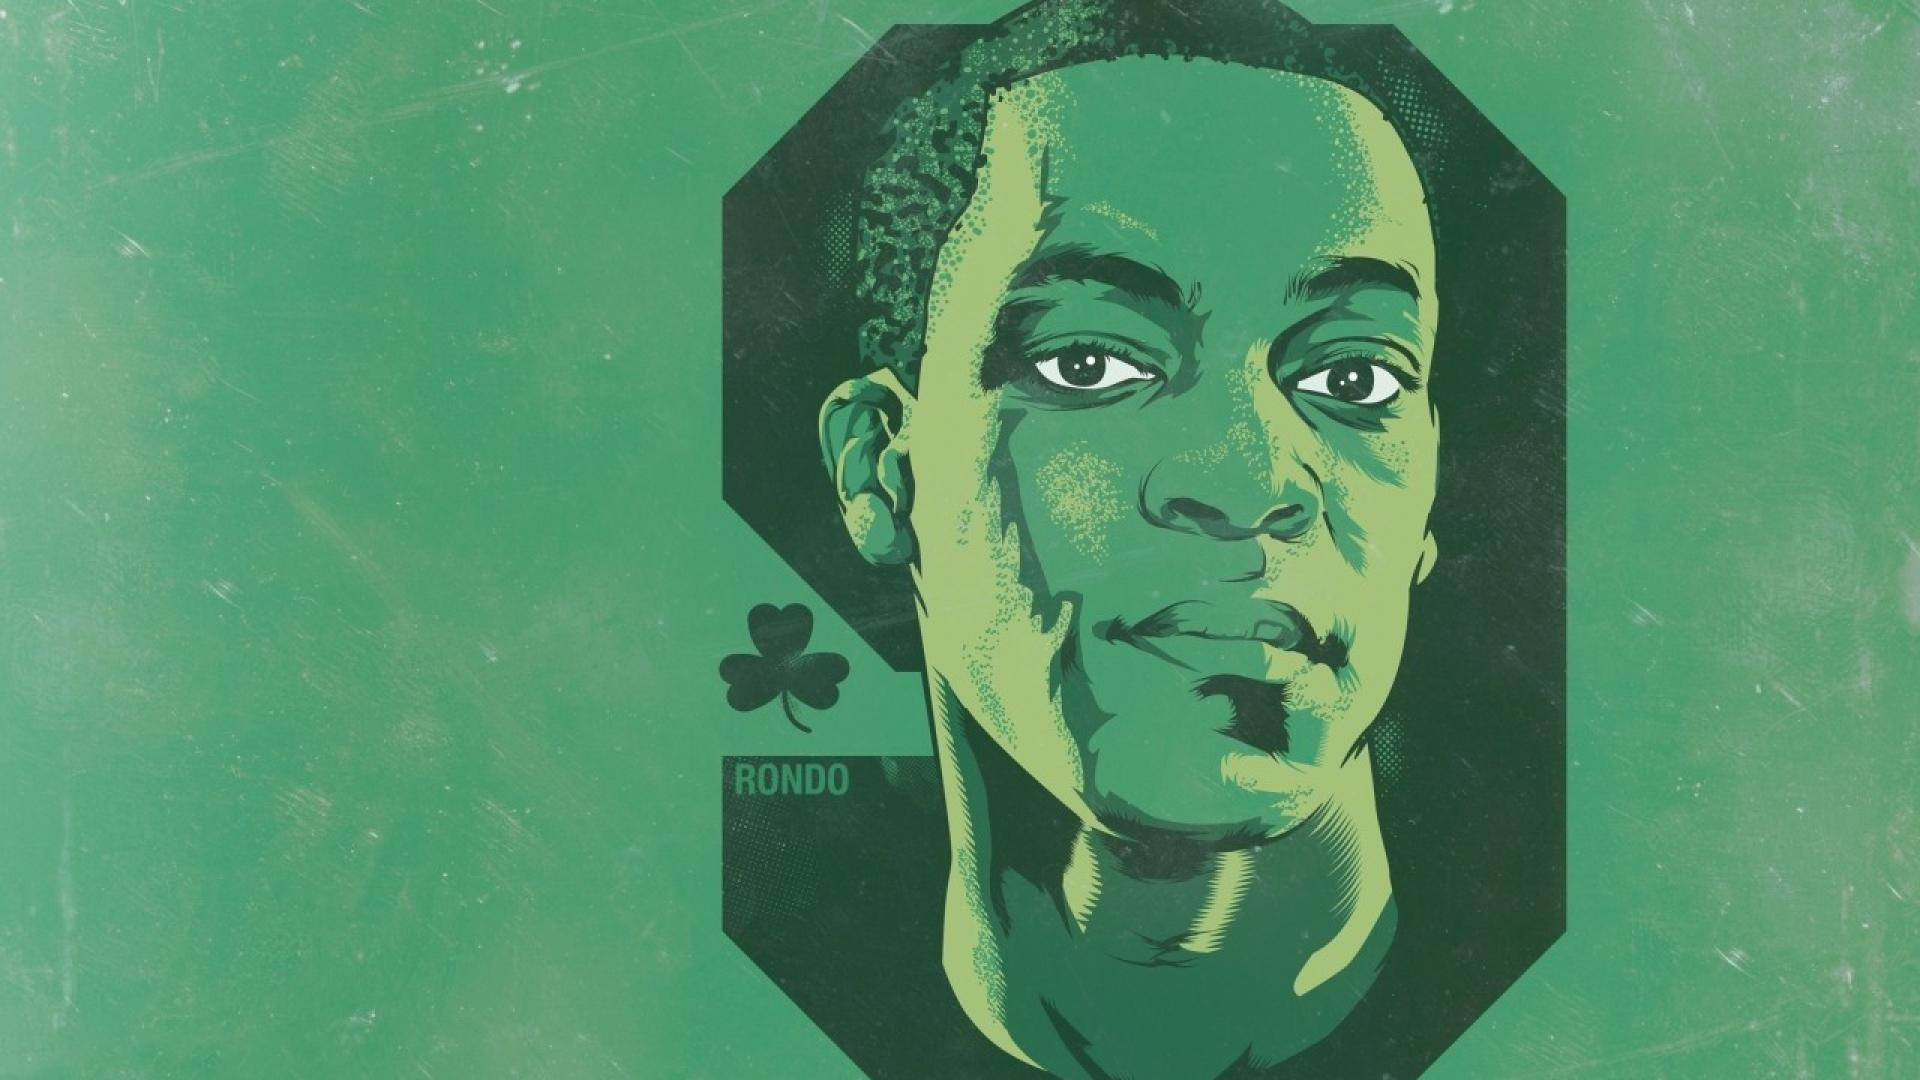 30 Fine Rajon Rondo Wallpapers In High Quality, Dominika